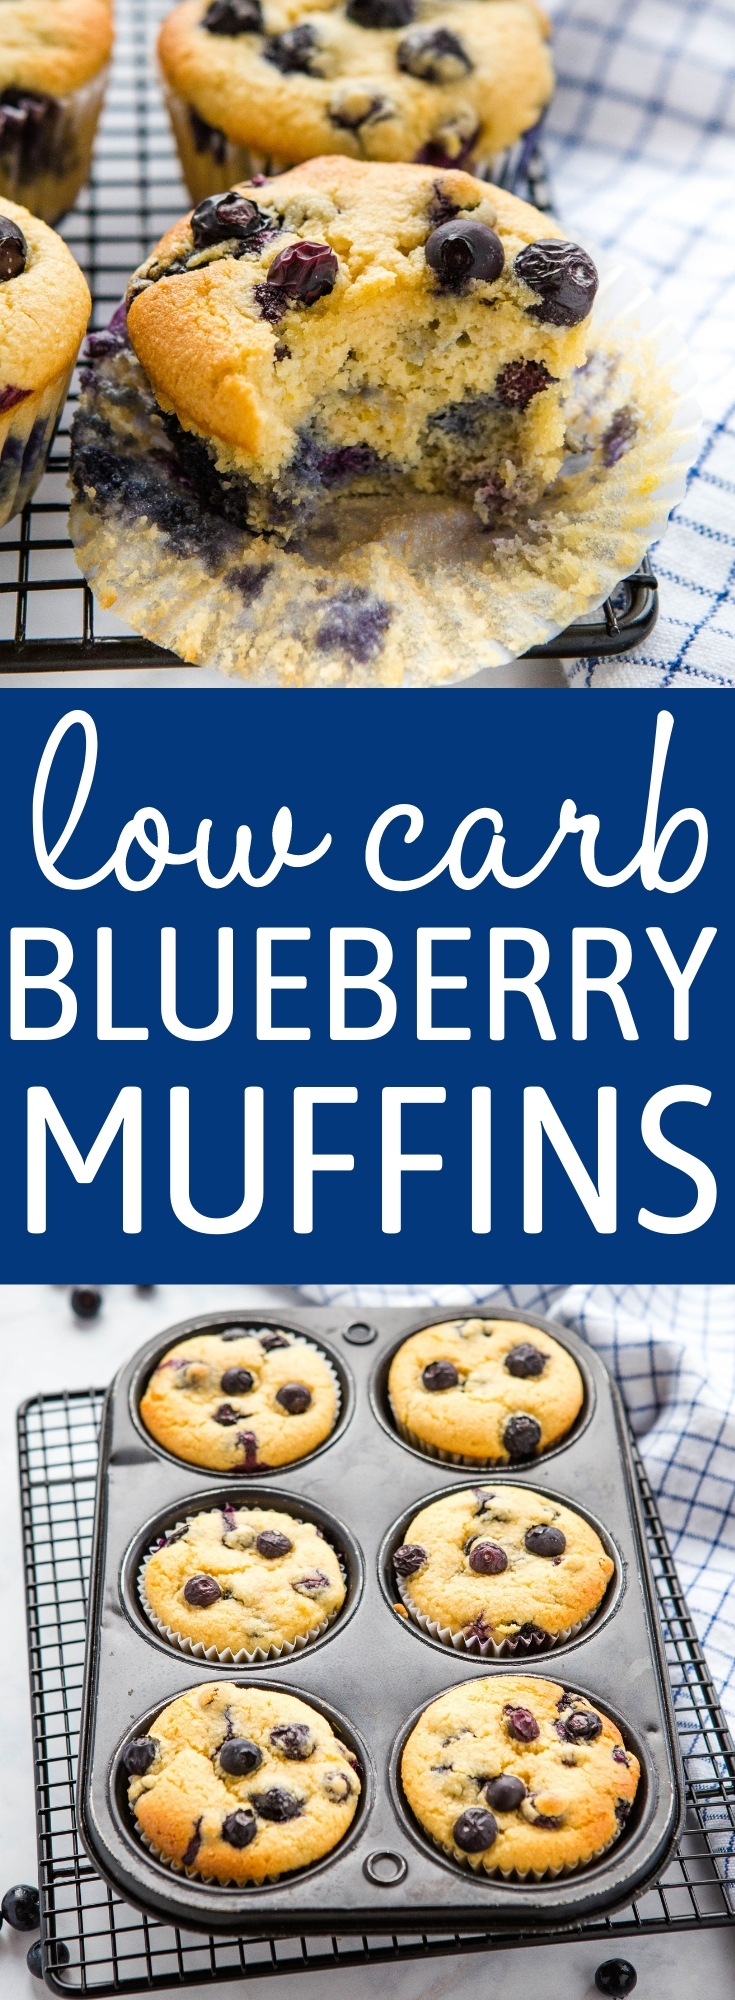 Best Ever Low Carb Blueberry Muffins Recipe Pinterest